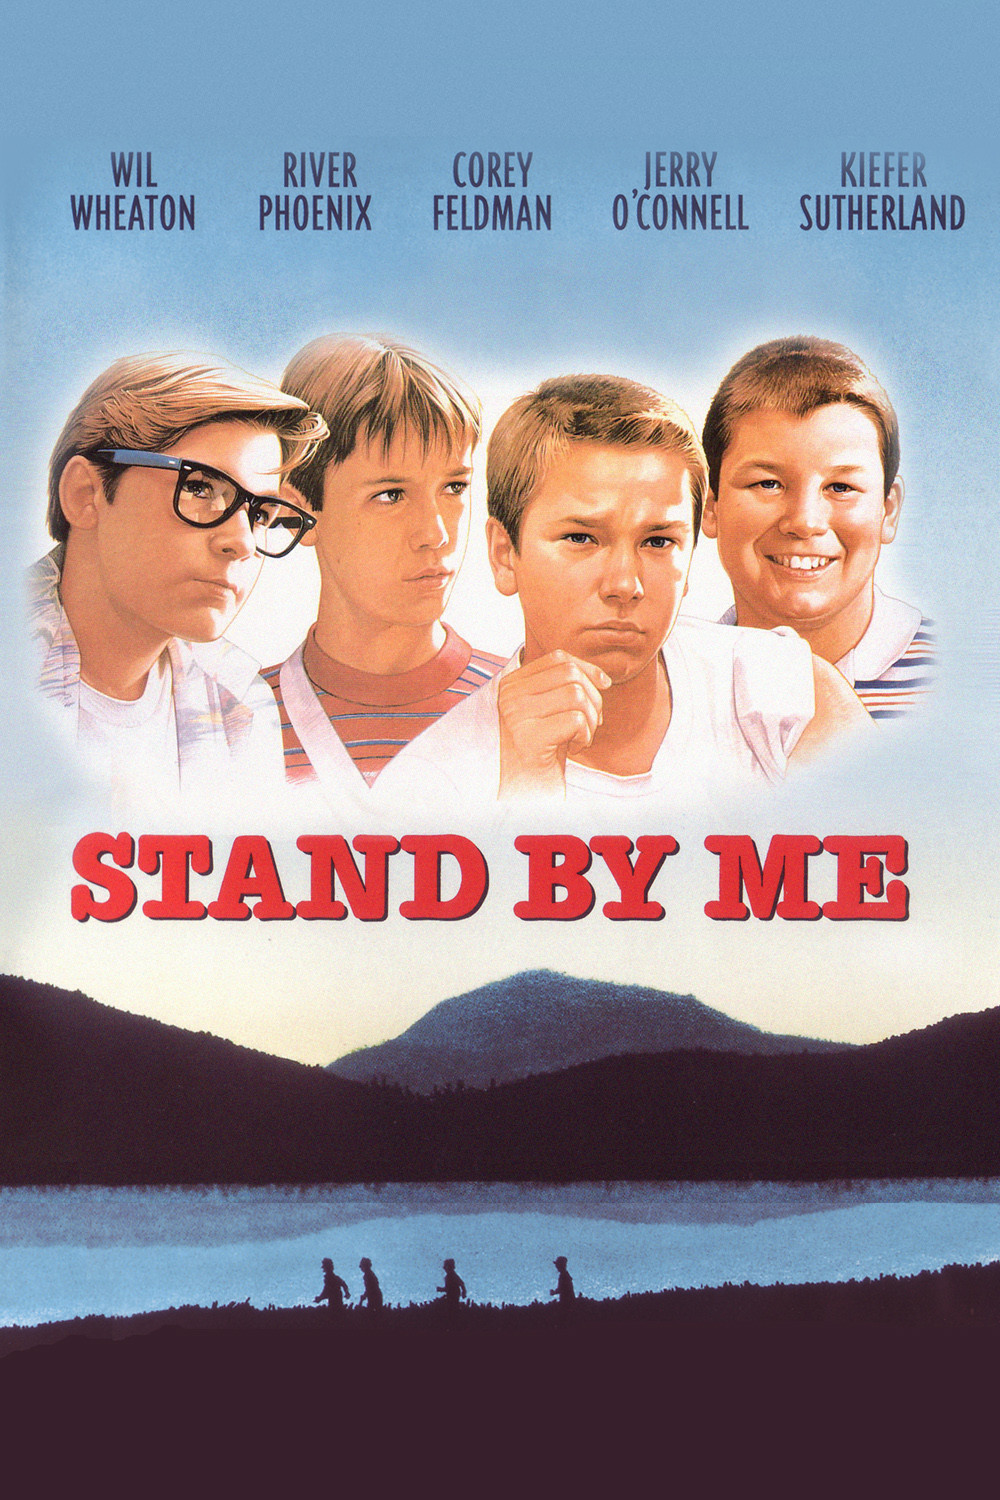 stand by me movie essays Bookrags - stand by me most comprehensive book notes provider on the web, with chapter summaries, character analysis, themes, style, historical context, critical overview (essays), criticism, media adaptations, compare and contrast, topics for further study, and more.